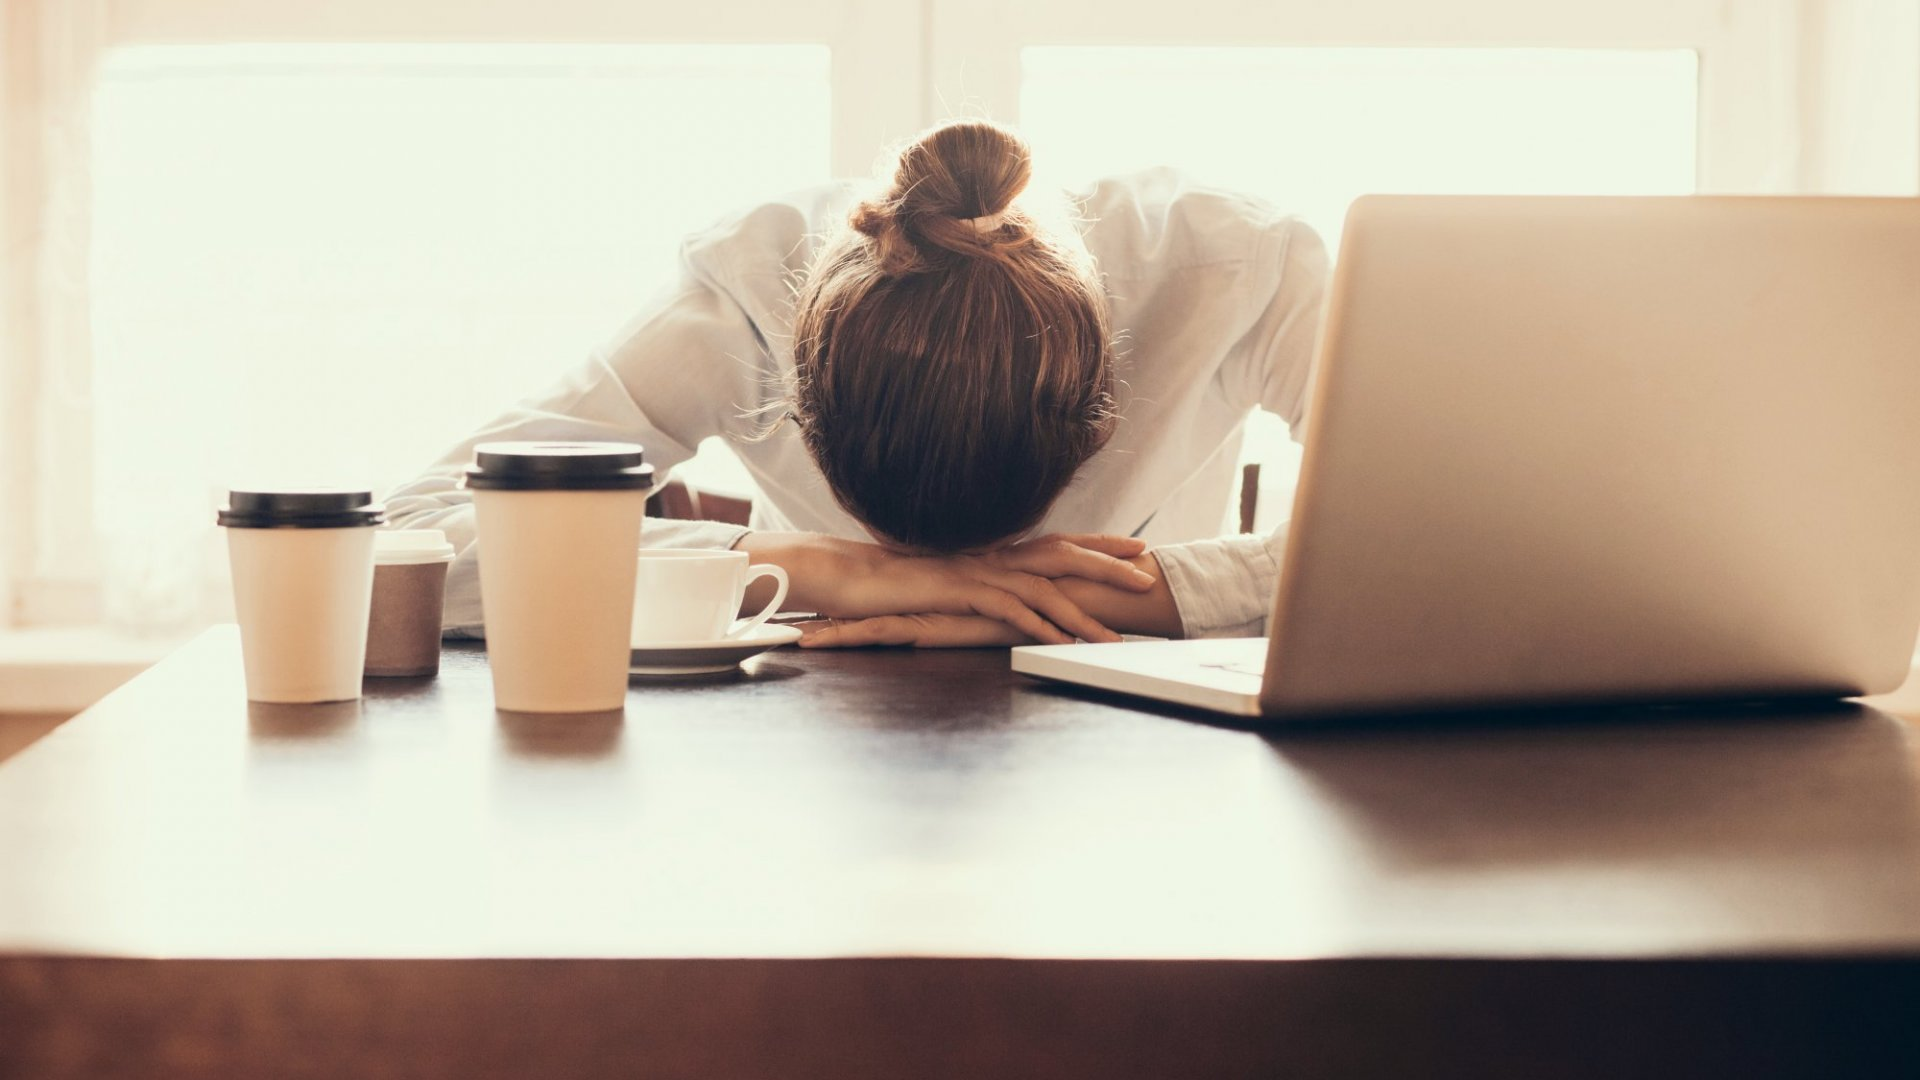 These Are the 10 Most Common Mistakes I See Entrepreneurs Make (Save Yourself Some Pain)